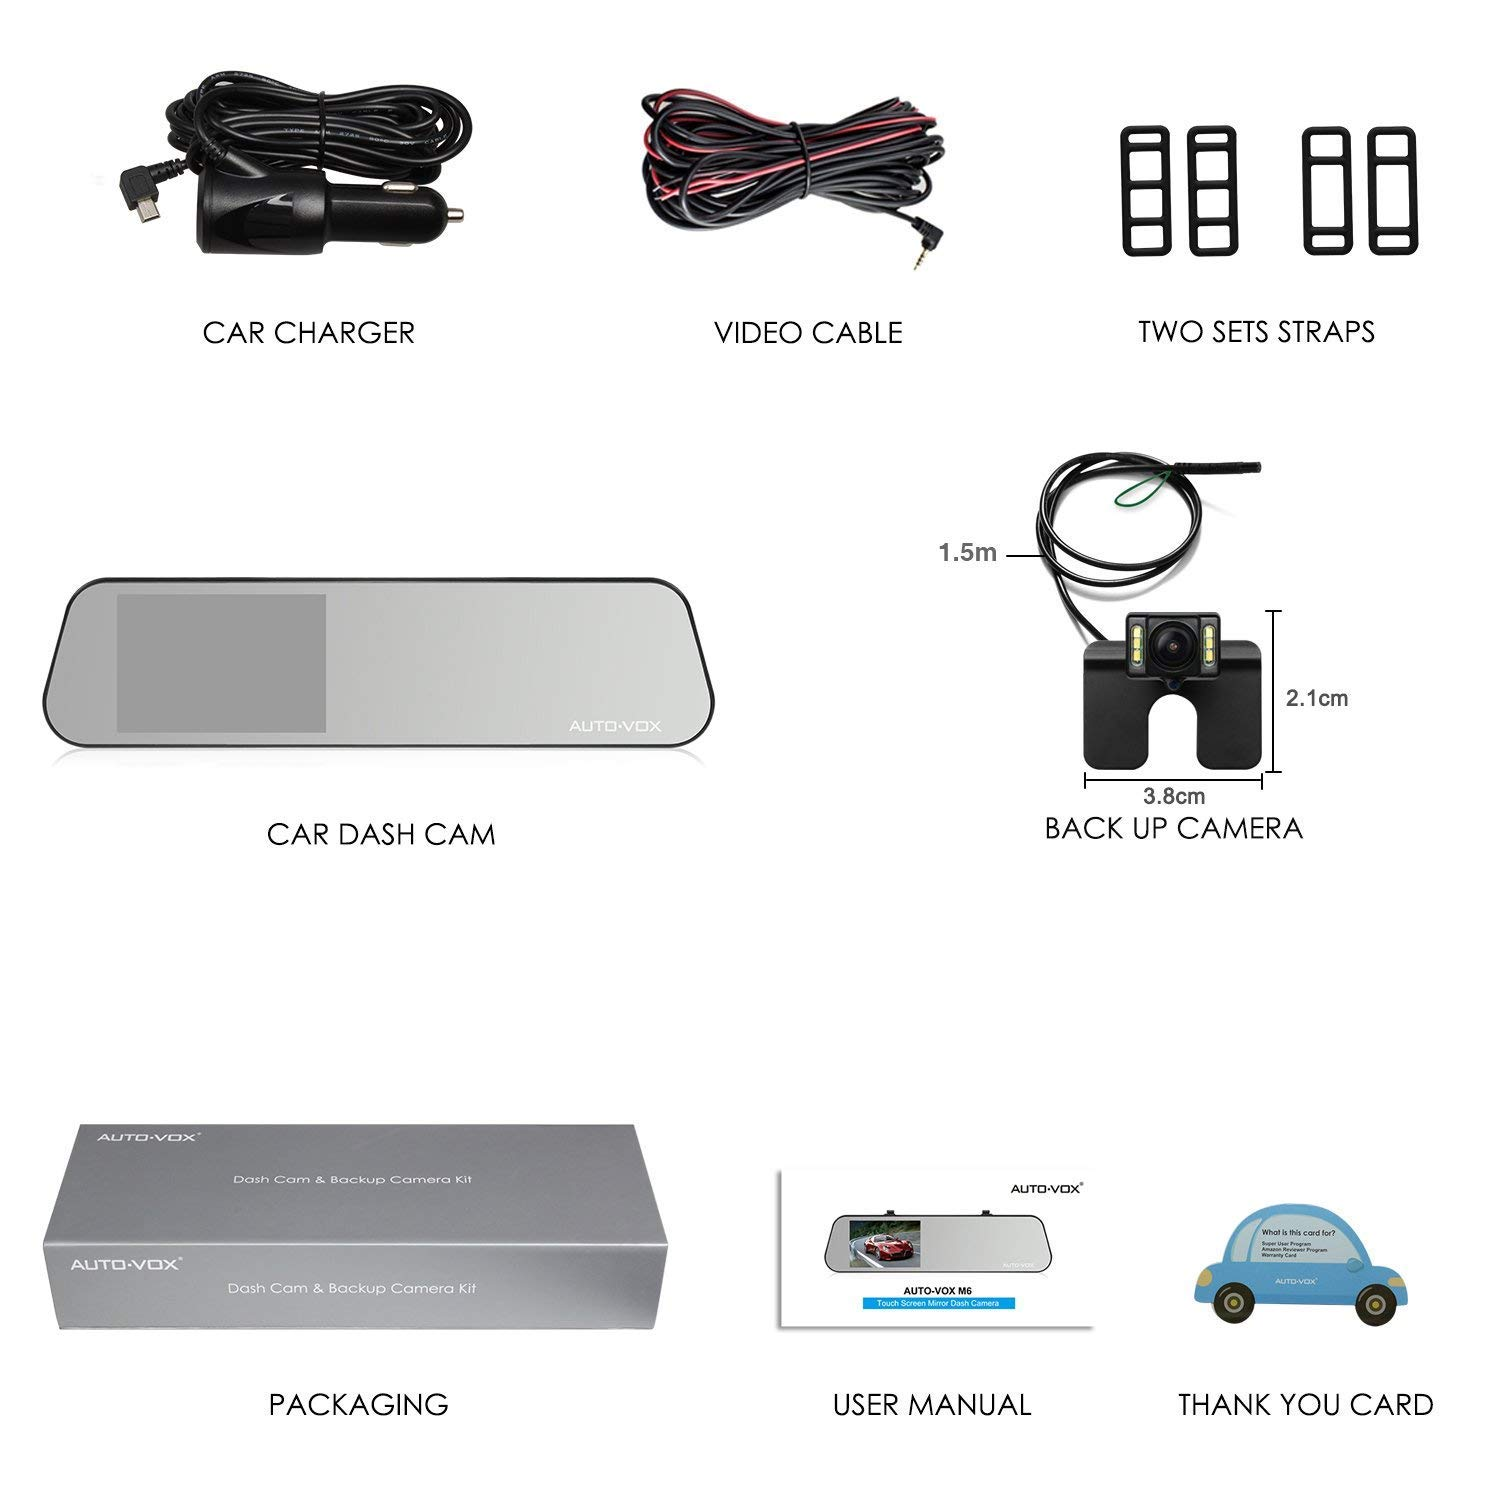 AUTO-VOX 2A Dash Cam Hardwire Kit Mini Fuse Adapter Car Charger Cable12.74 ft Compatible with X1//X2//A1//M8//V1//A118//M6//N2//G1W GPS Navigator Radar Detector and All Other Mini USB Port Devices